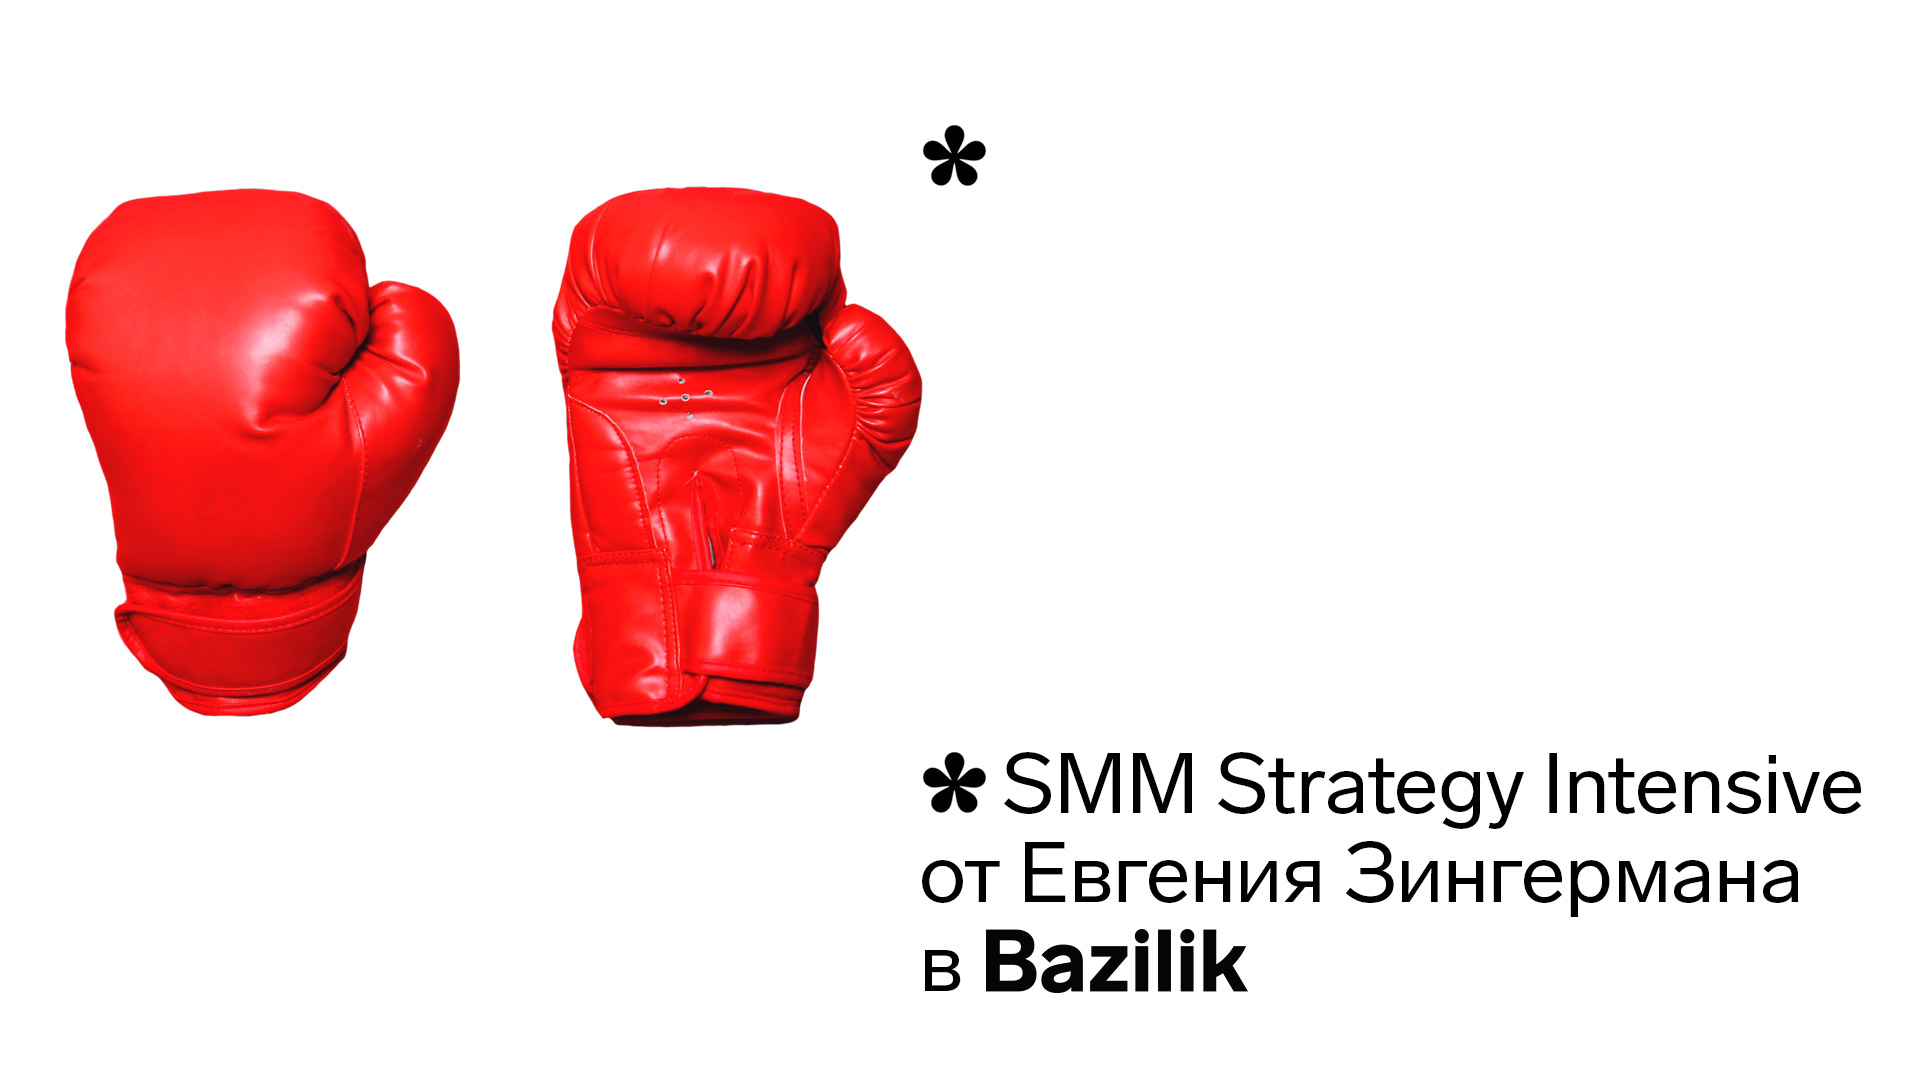 SMM Strategy Intensive